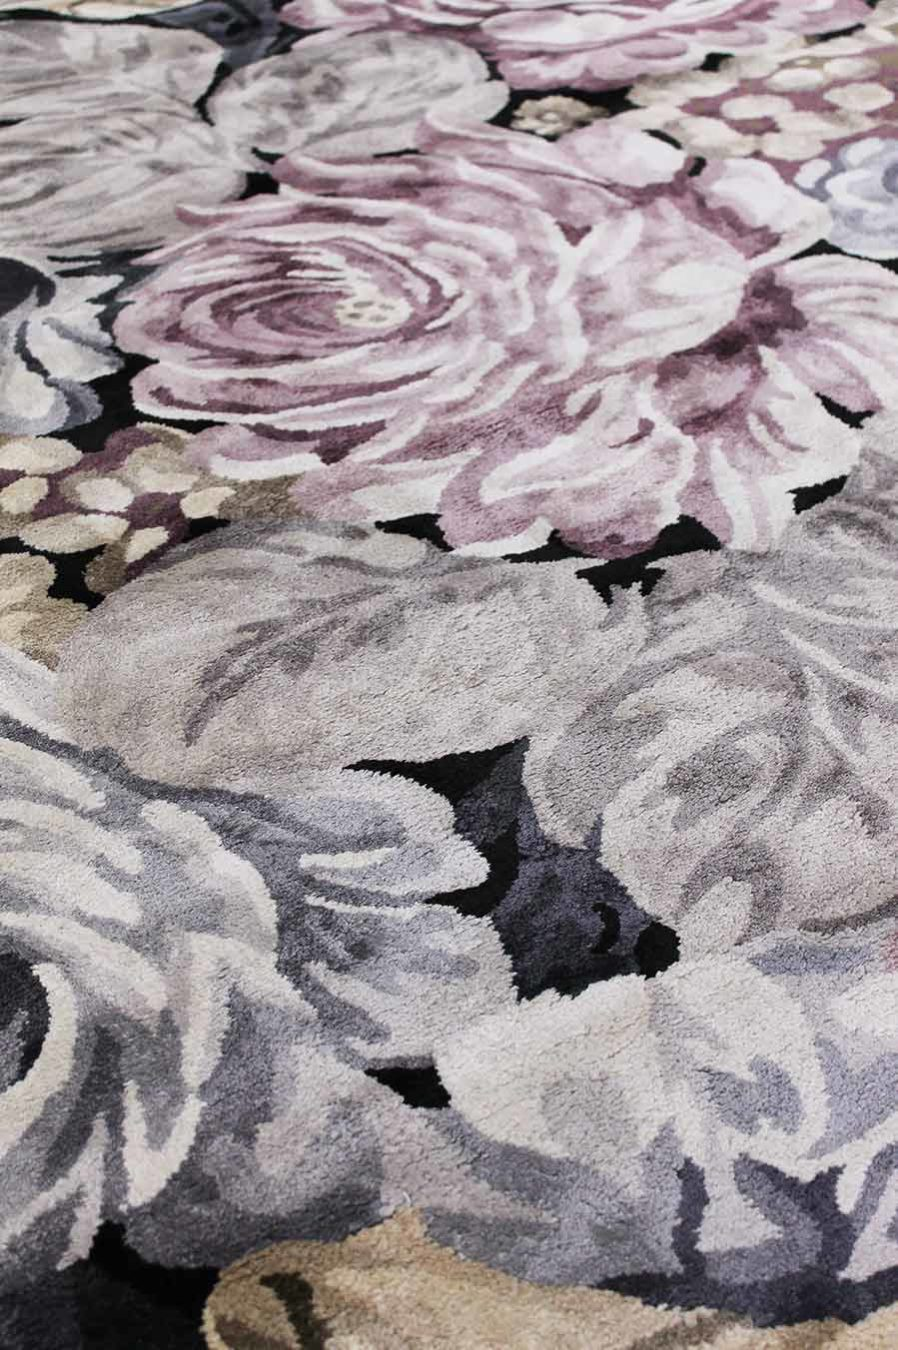 Close up view of floral Rendezvous rug in pink and purple colour